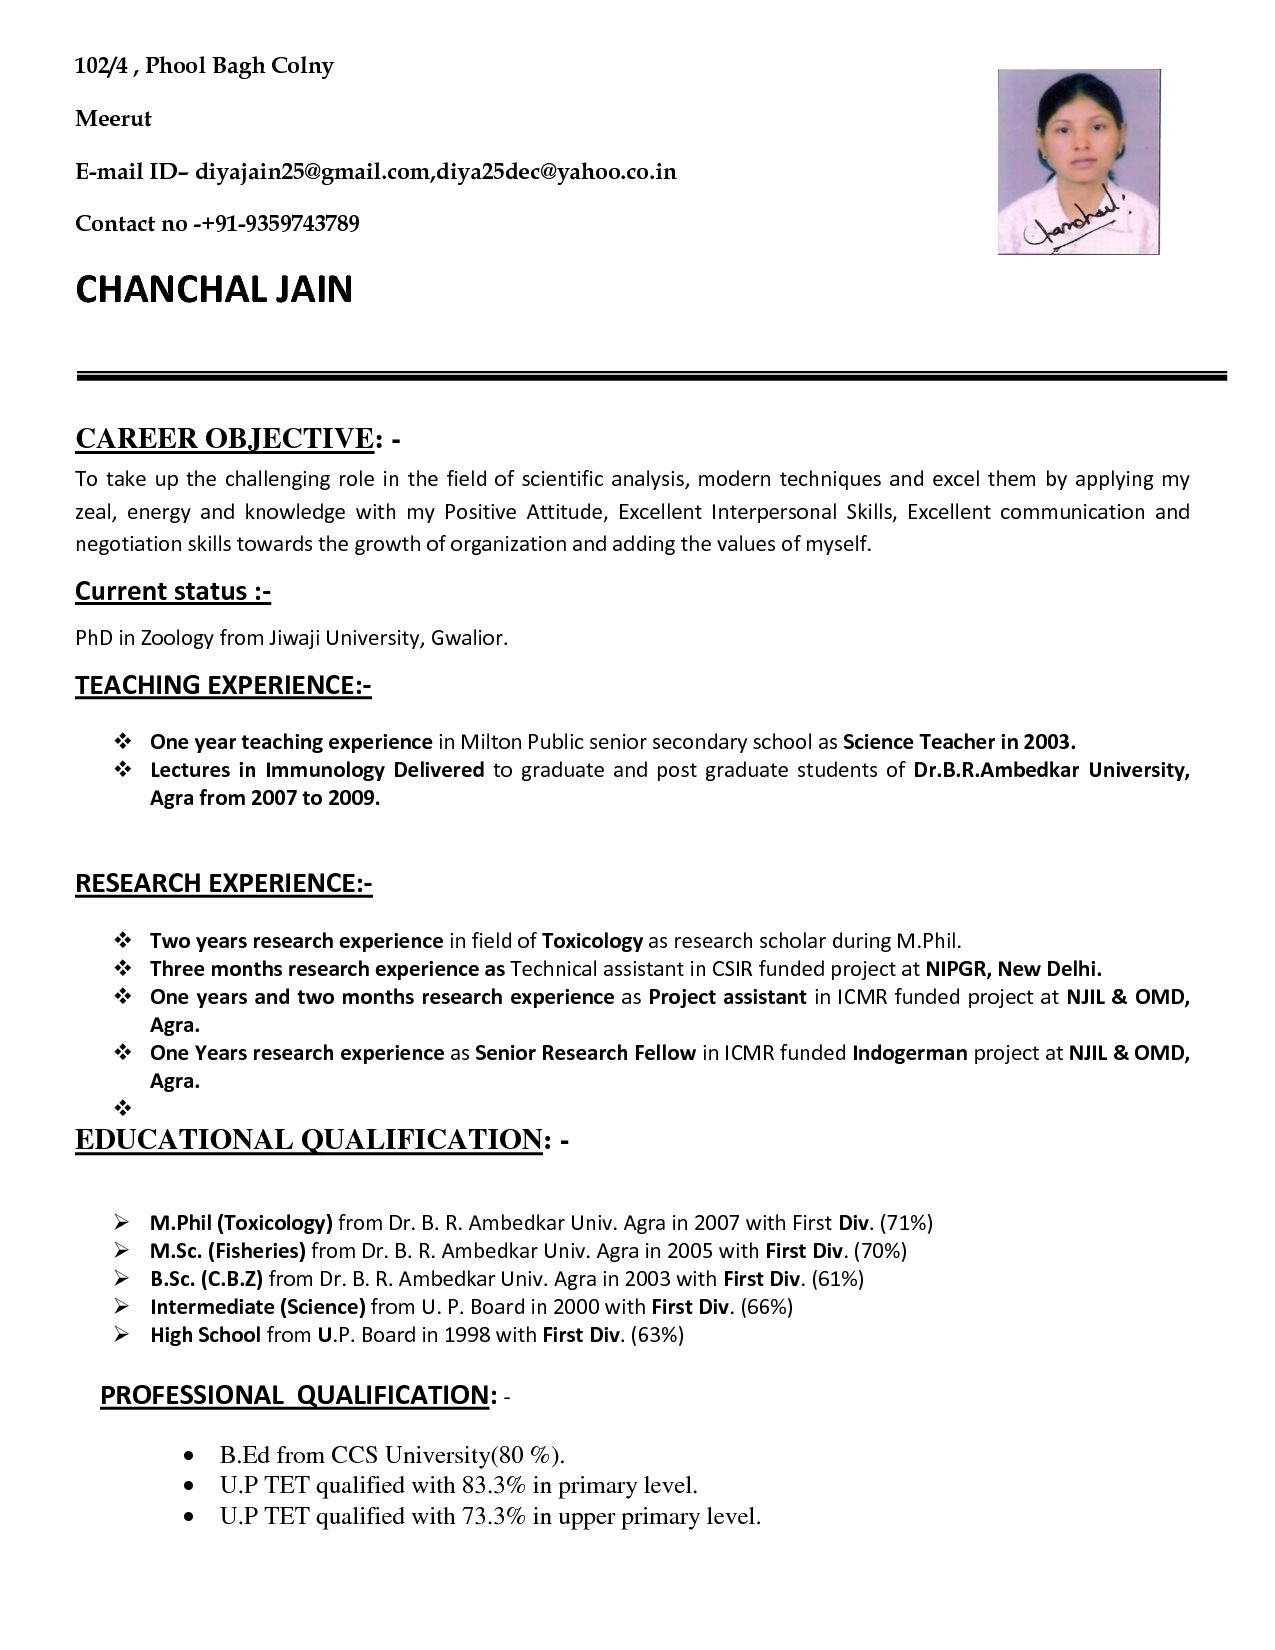 Resume Format For School Teacher Job It Resume Cover Letter Sample ...